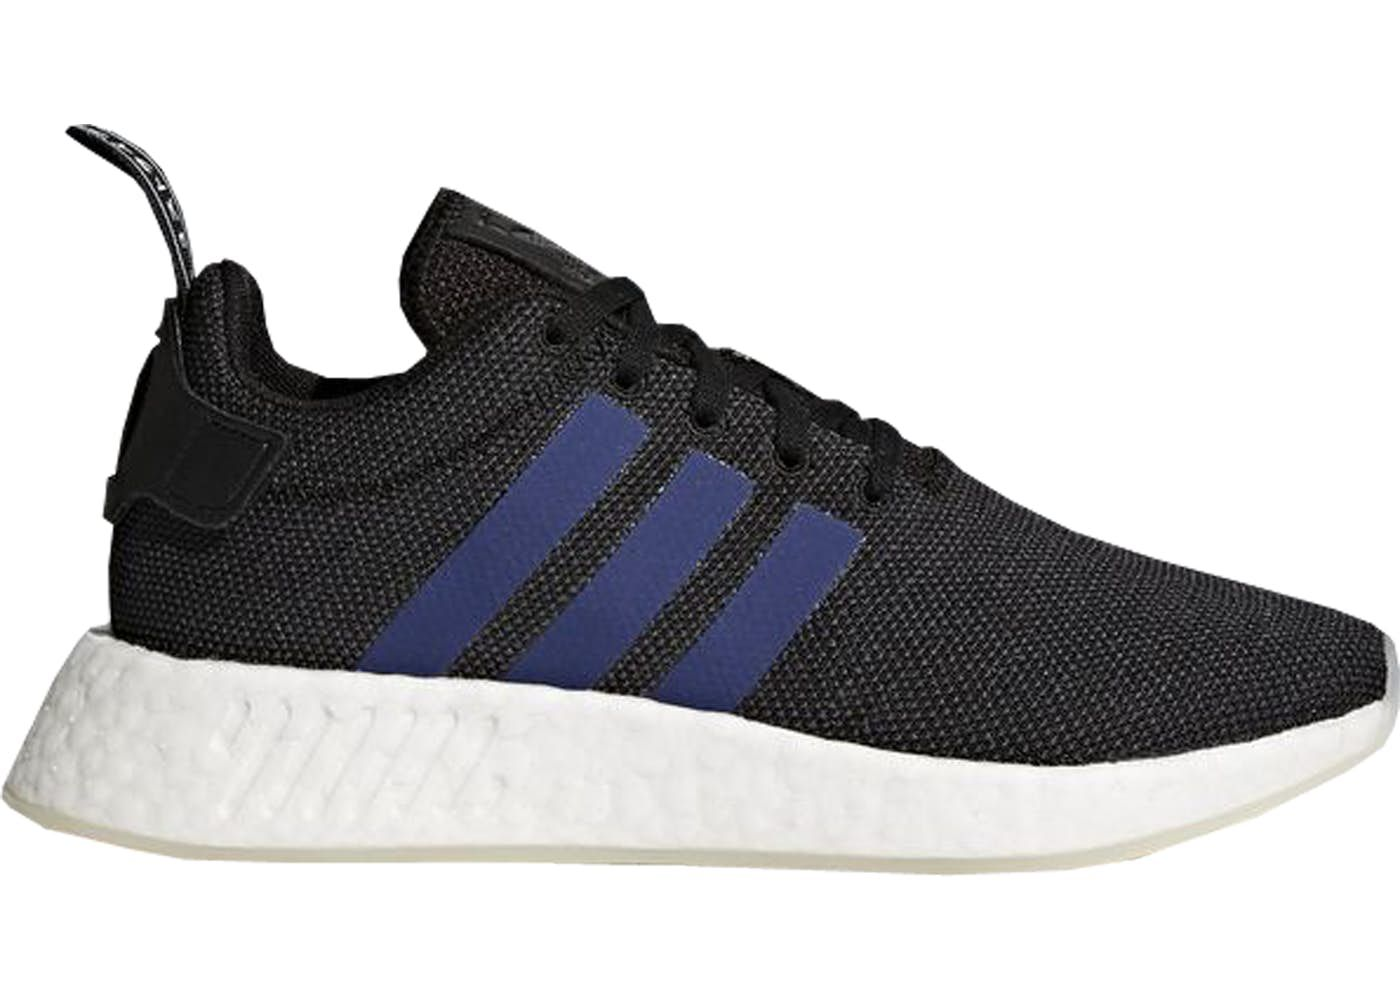 Pin by Jake Mccrae on Fashion ღ Baby | Adidas nmd r2